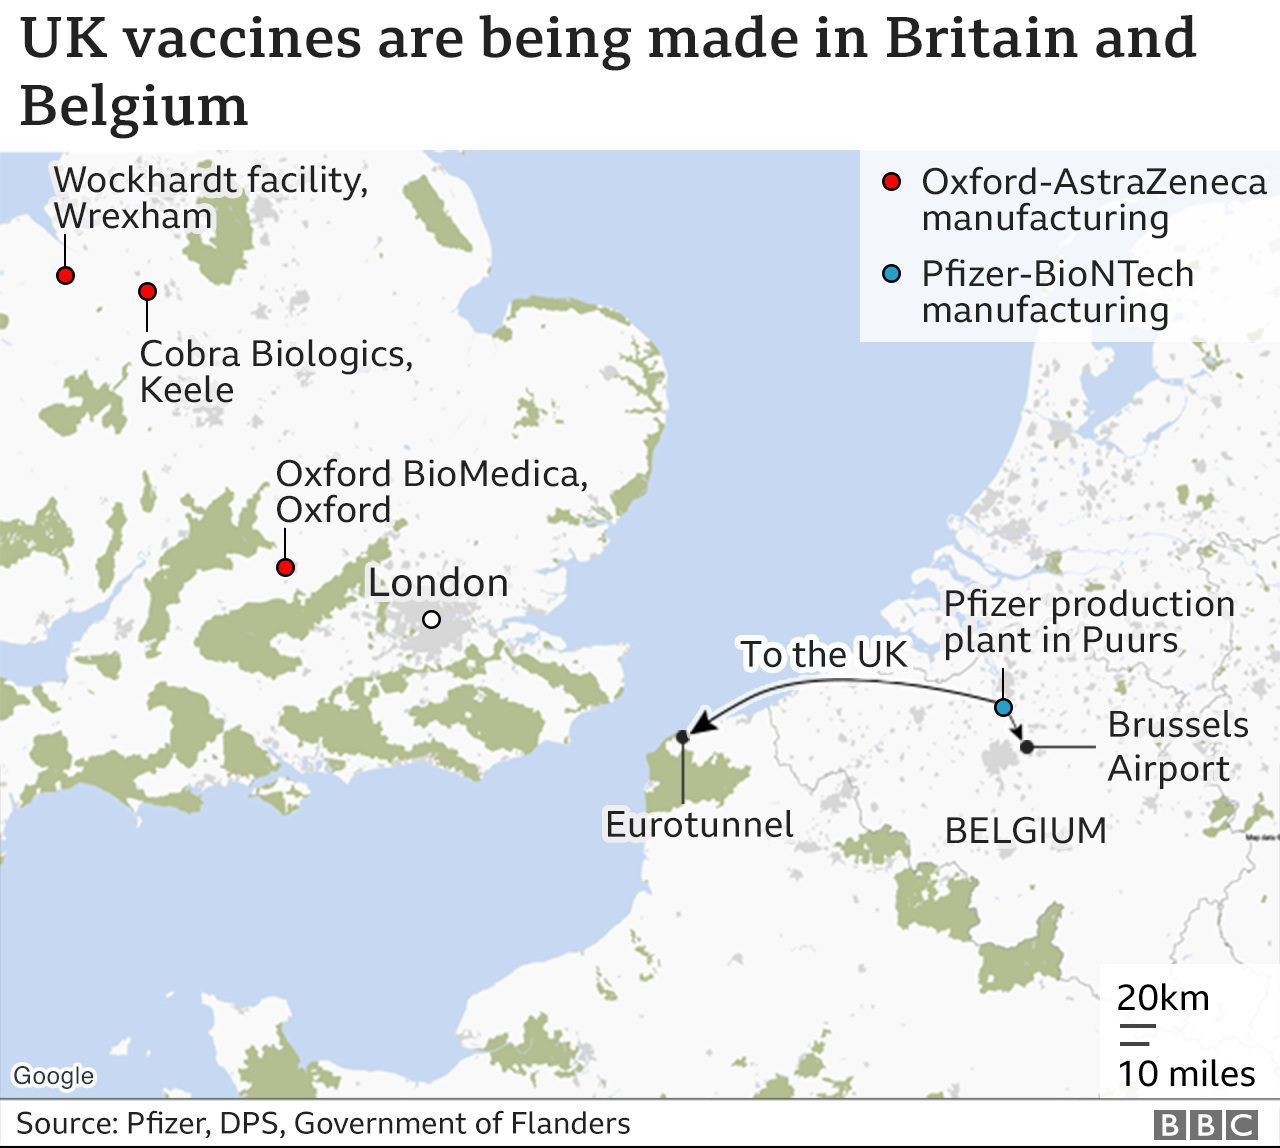 Map showing where the vaccines are made: Oxford in the UK and Pfizer in Belgium